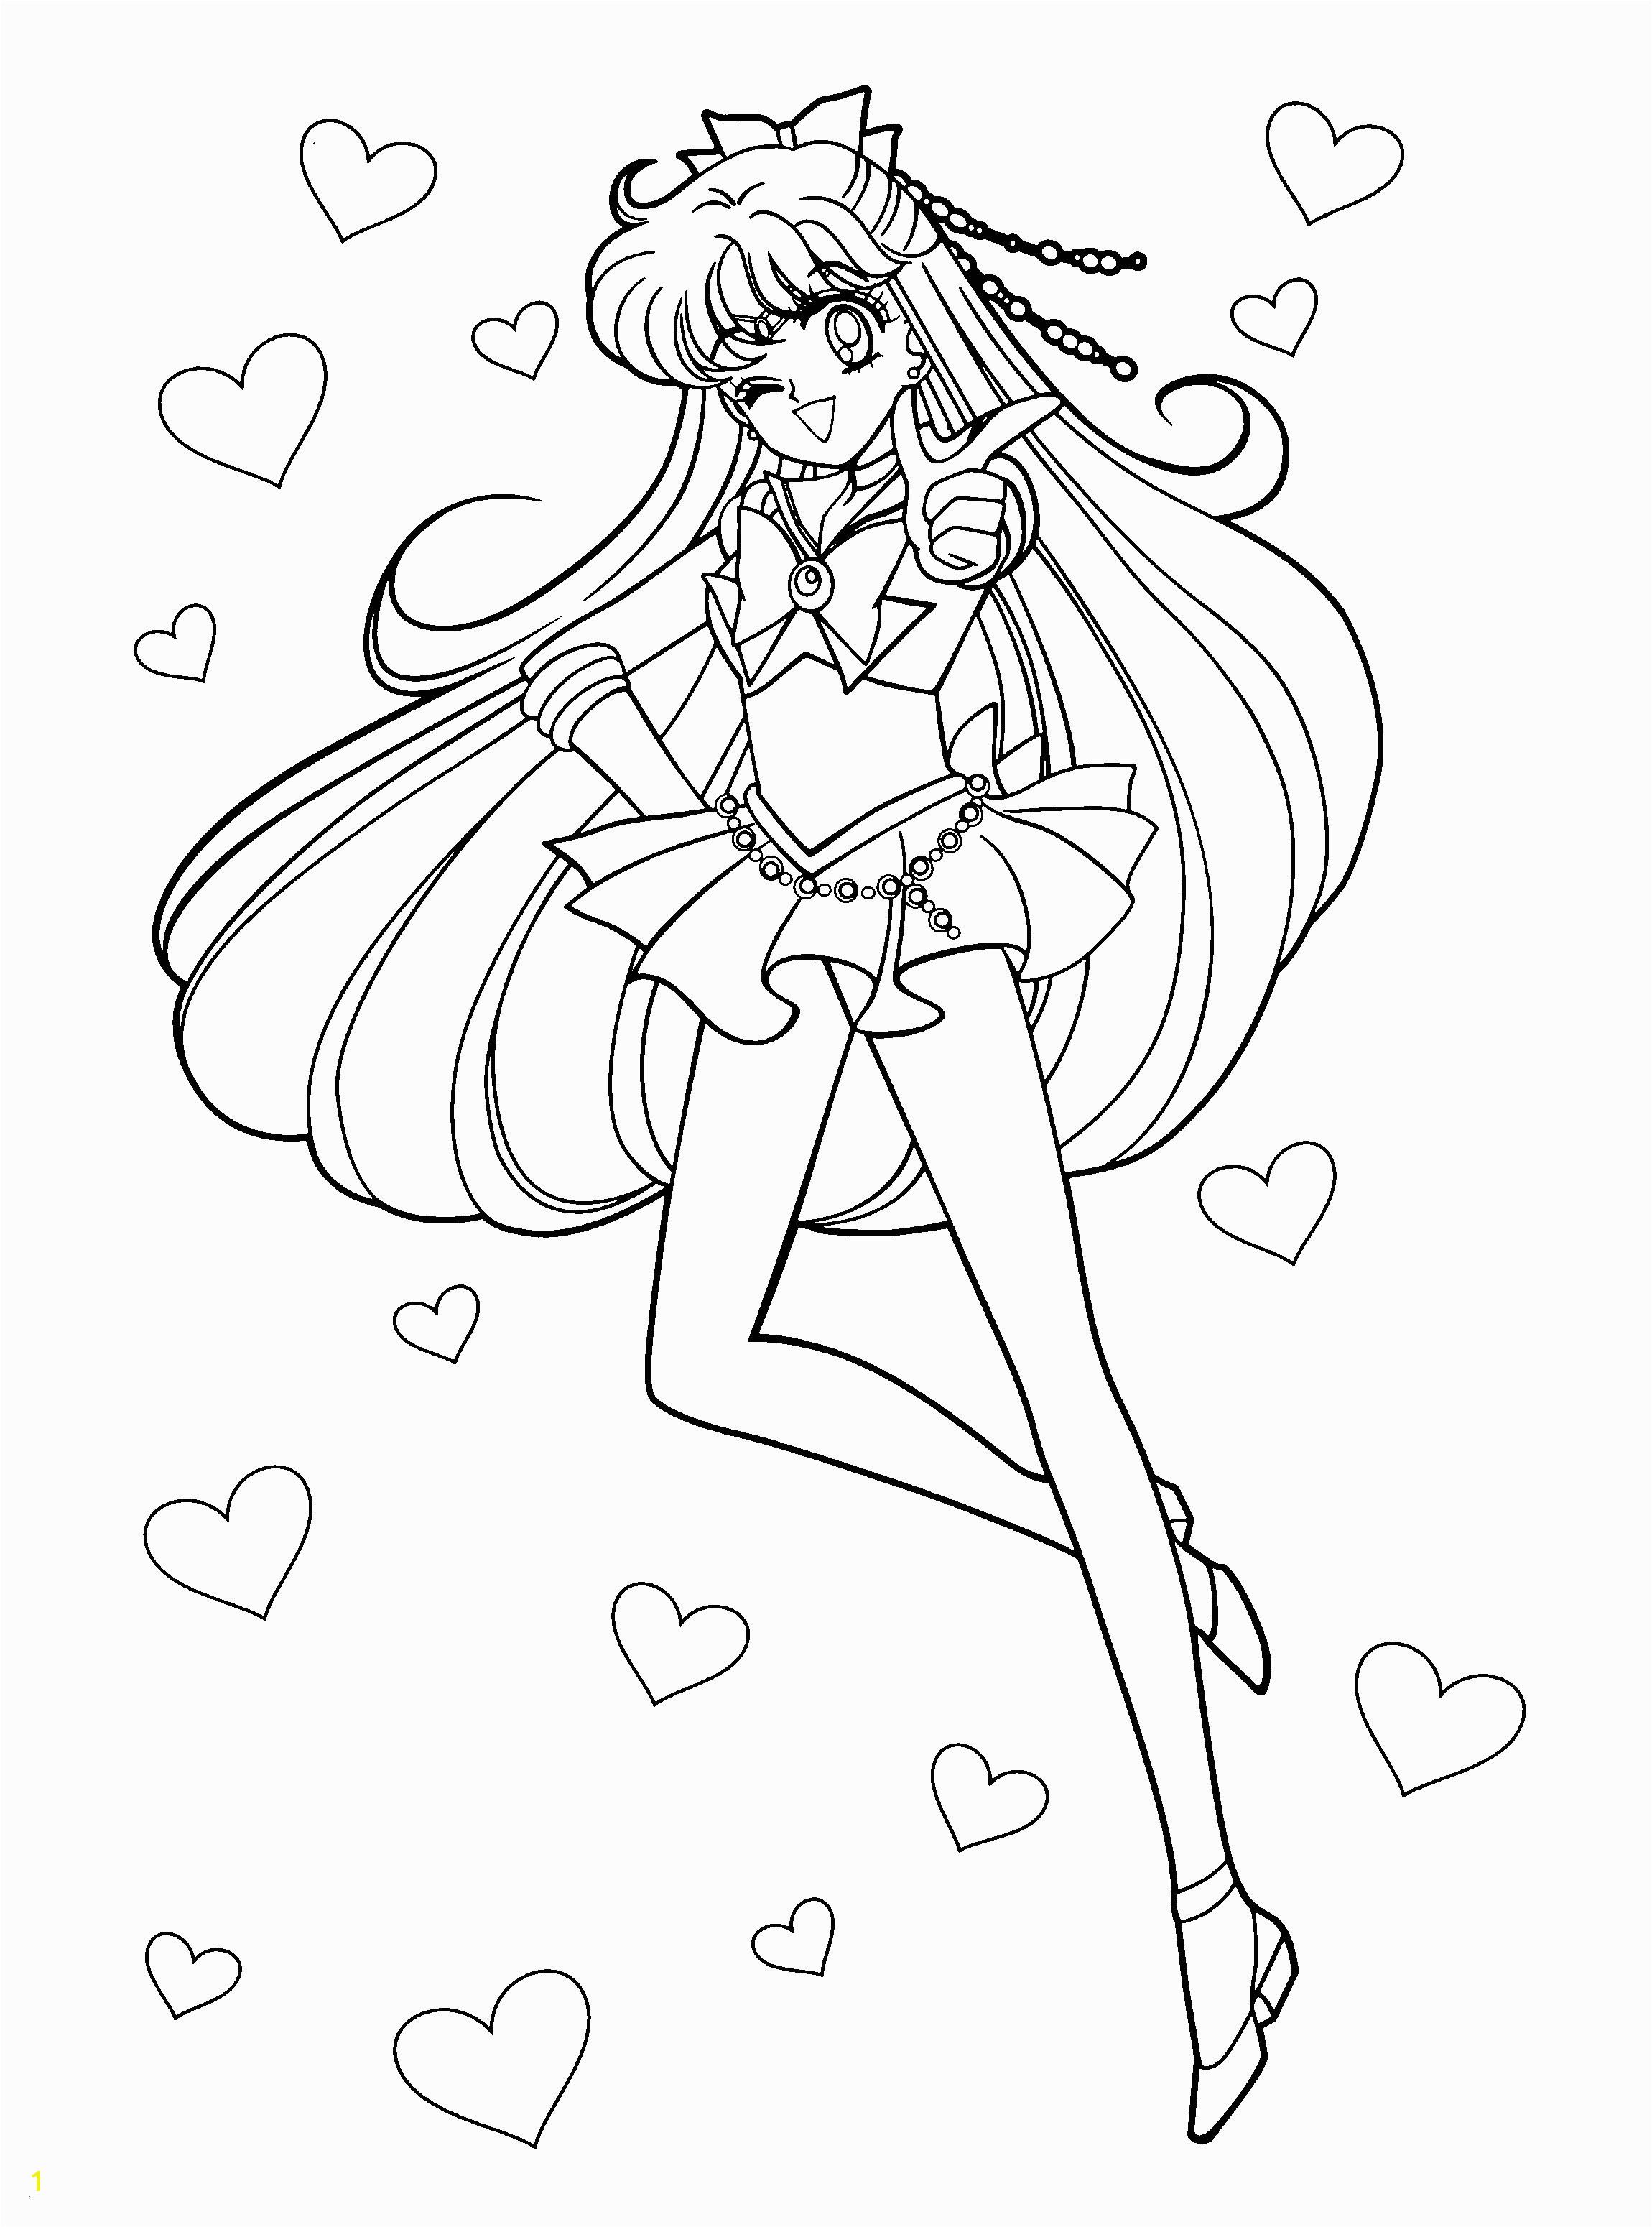 Sailor Mini Moon Coloring Pages Sailor Mini Moon Coloring Pages Coloring Pages Coloring Pages